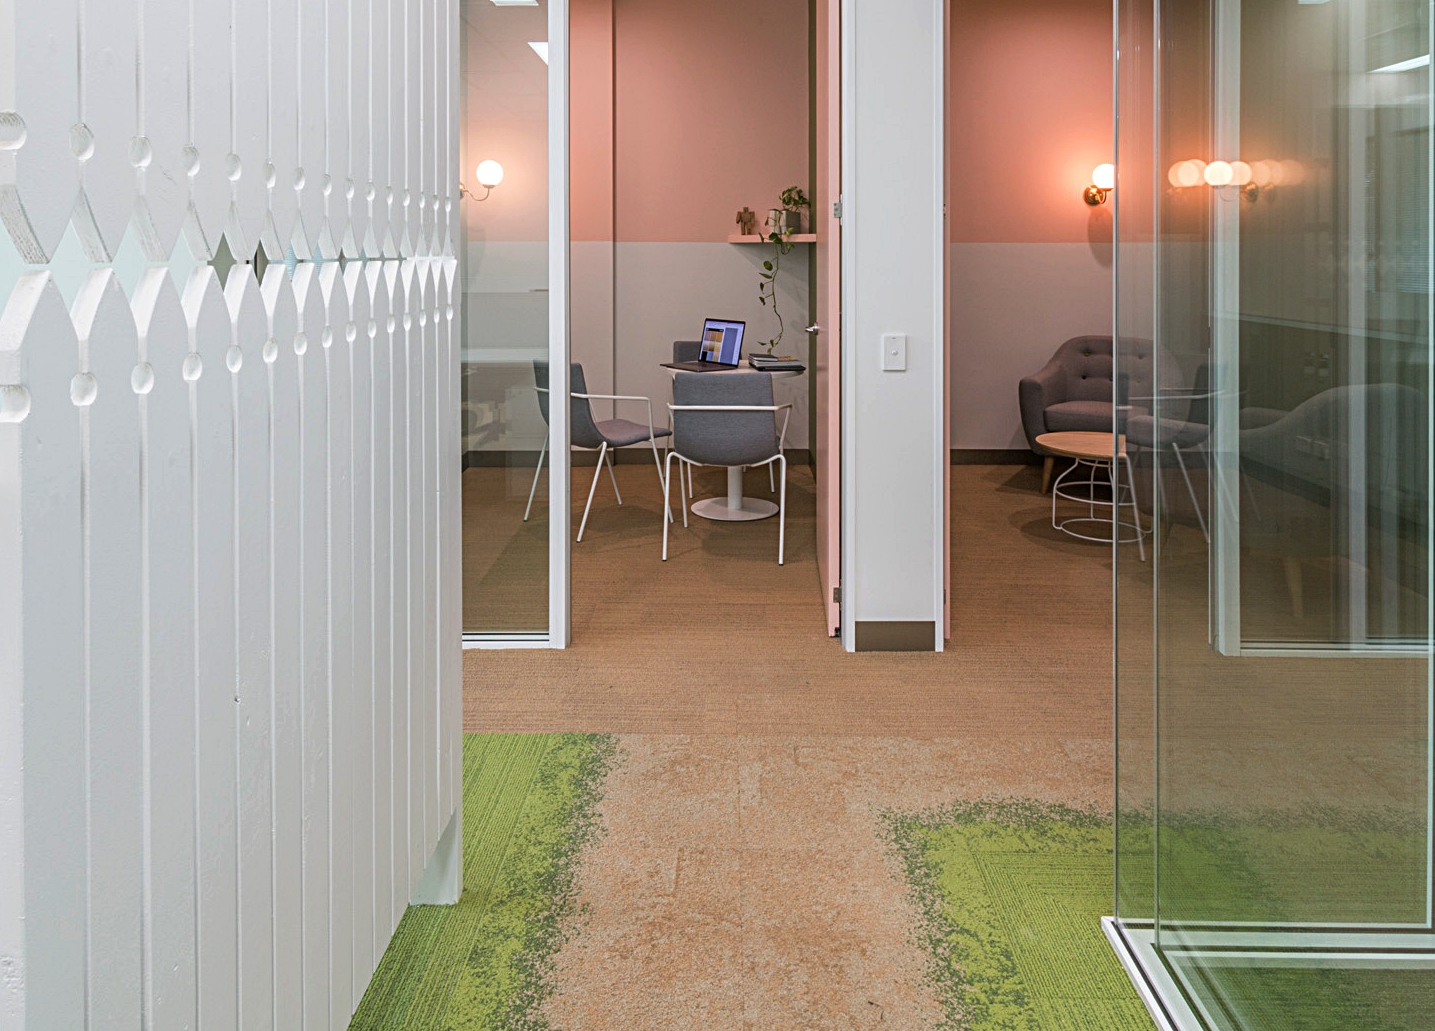 The Counselling Rooms at YFS Jimboomba